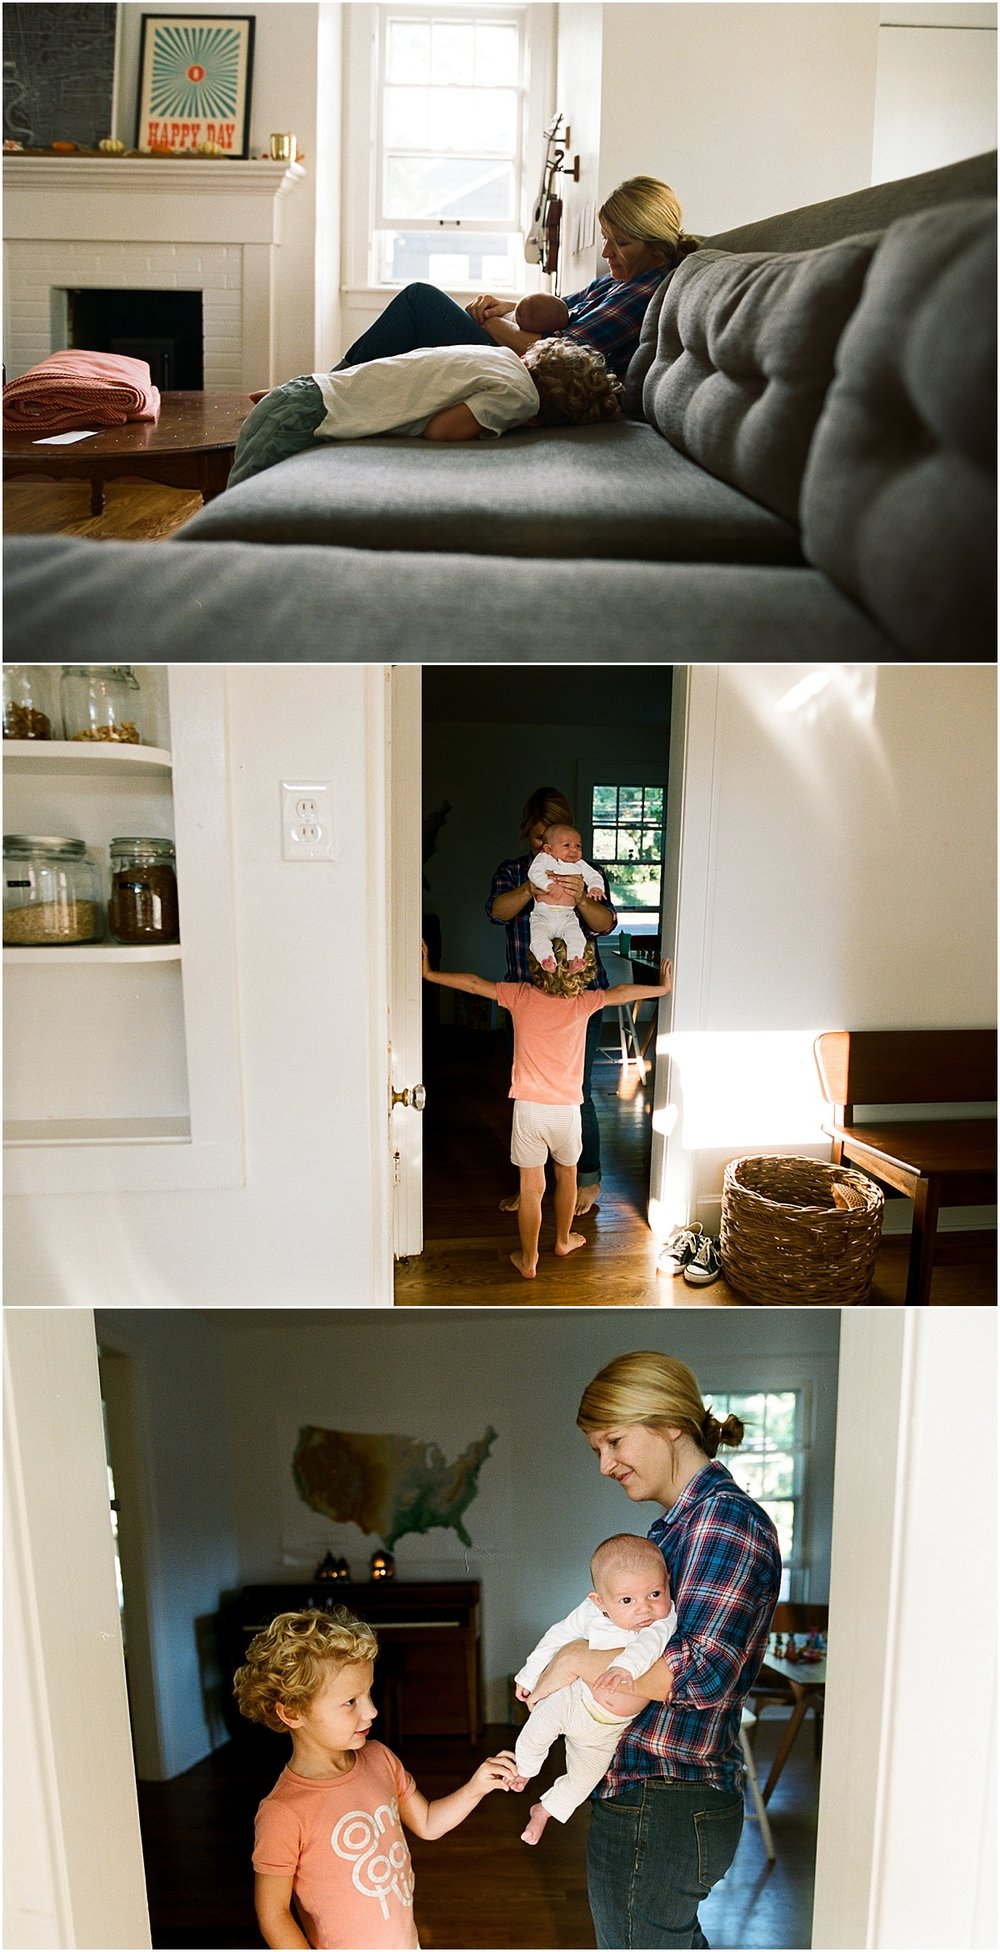 ©MariaManco Family Session at Home on Film 3